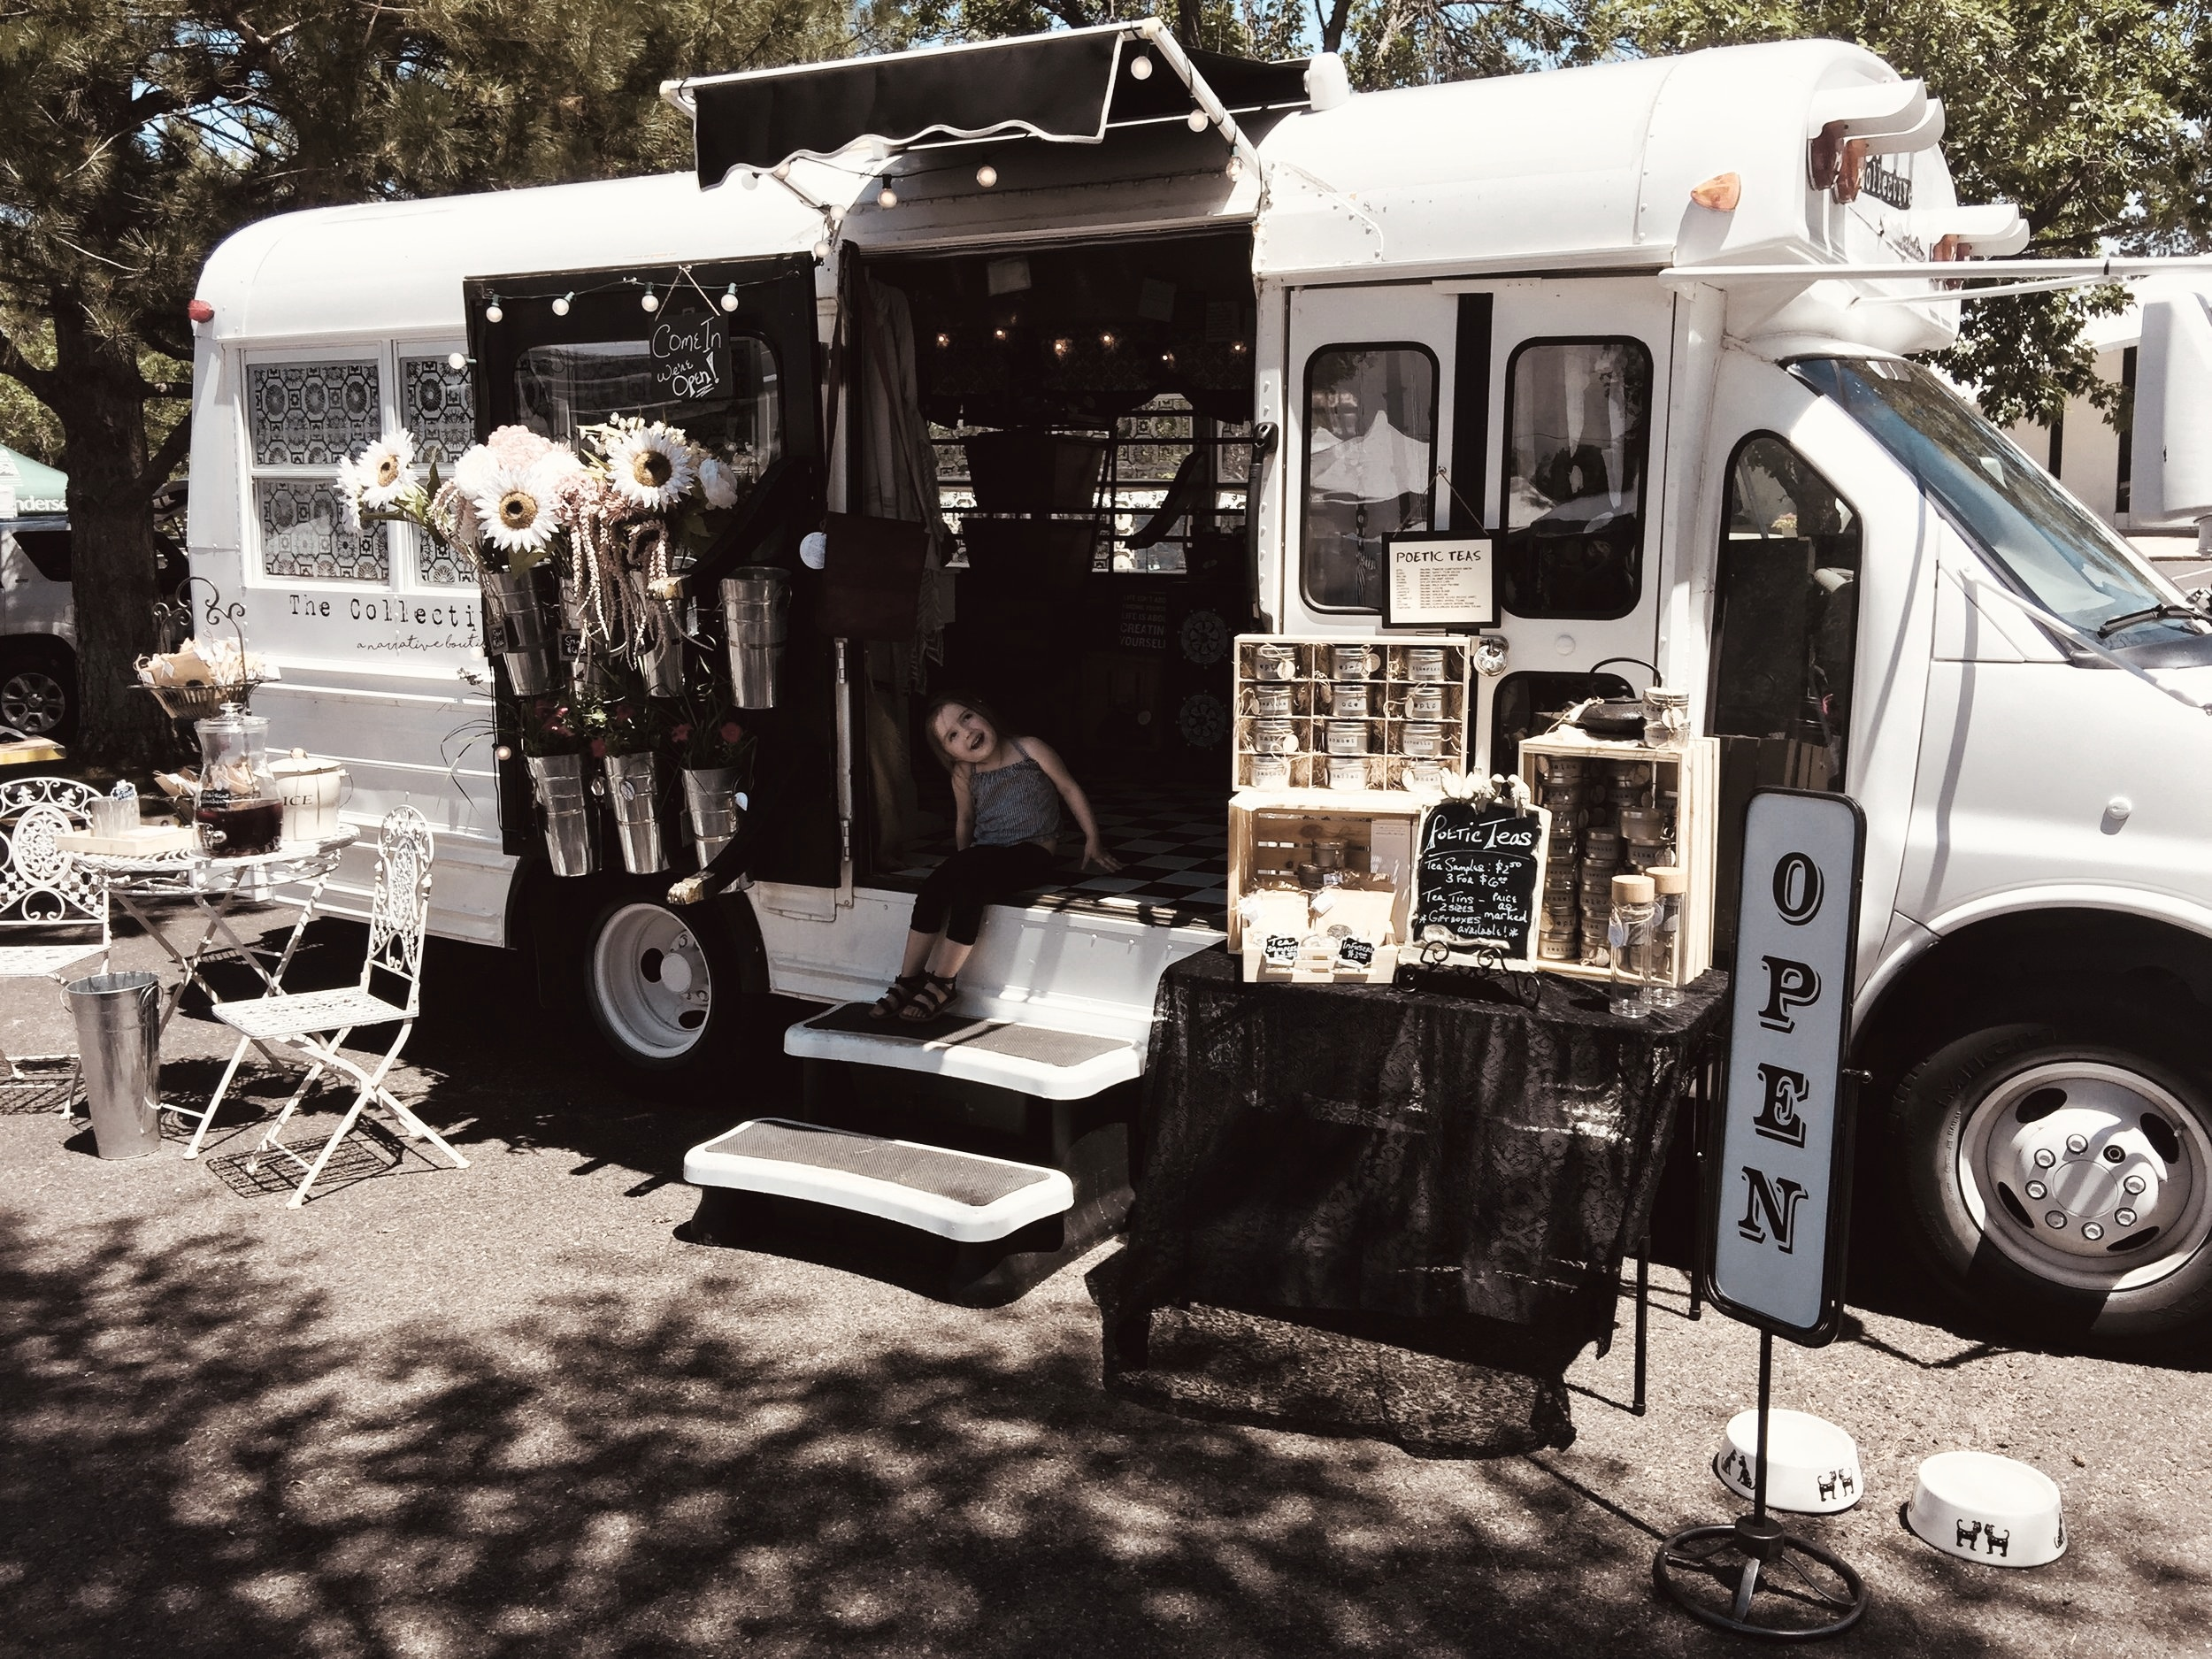 Mobile Boutique Open - Most Saturdays in Lakewood